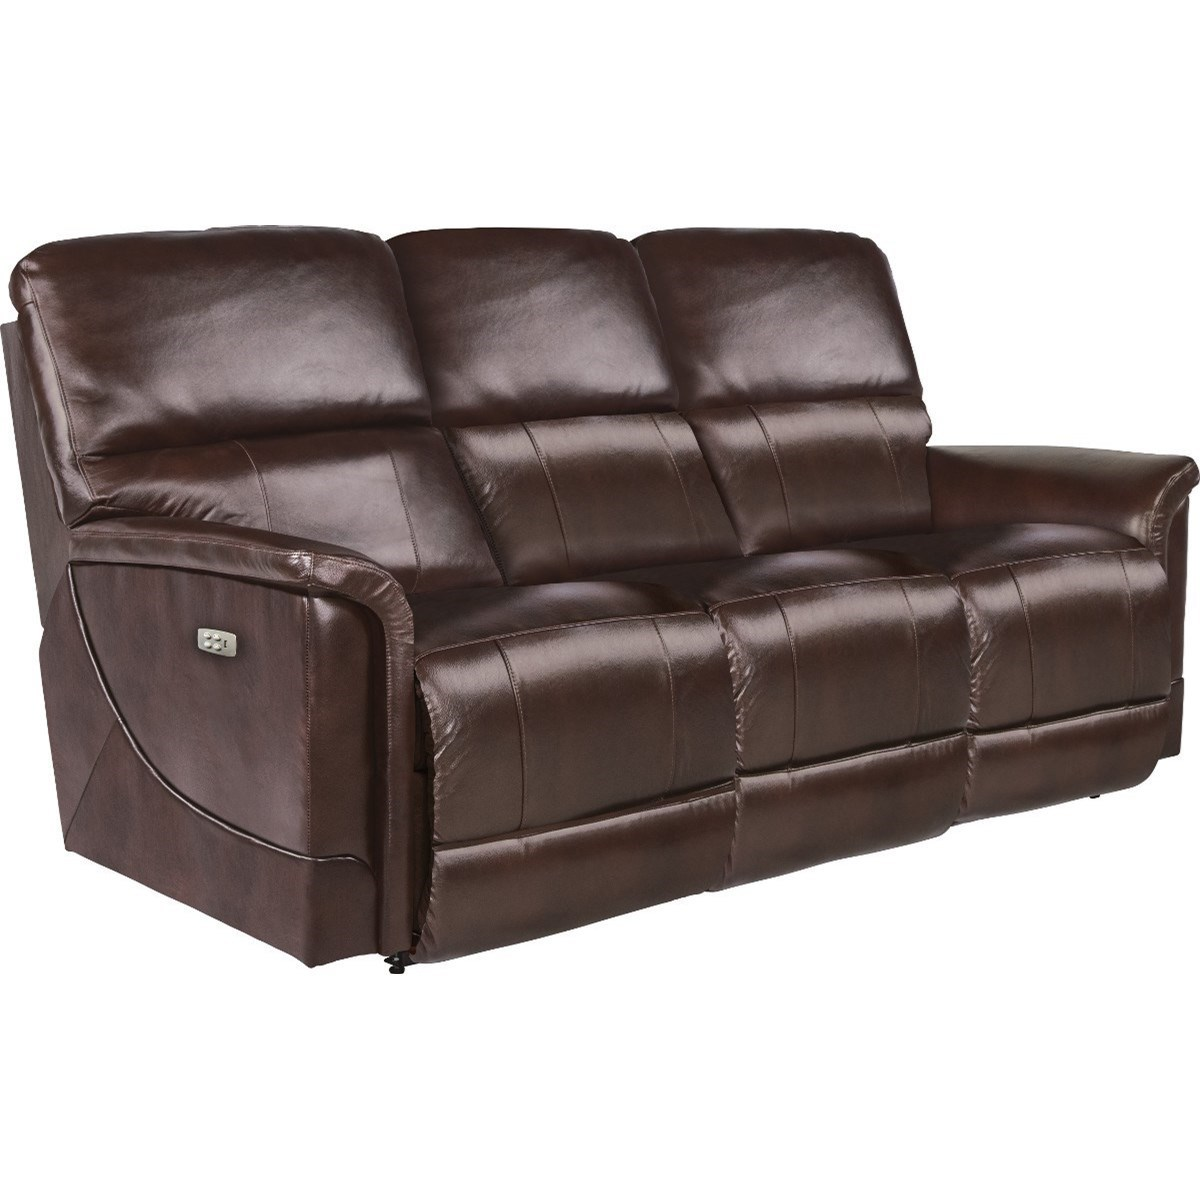 Superieur La Z Boy Oscar Casual Power Reclining Sofa With USB Charging Ports